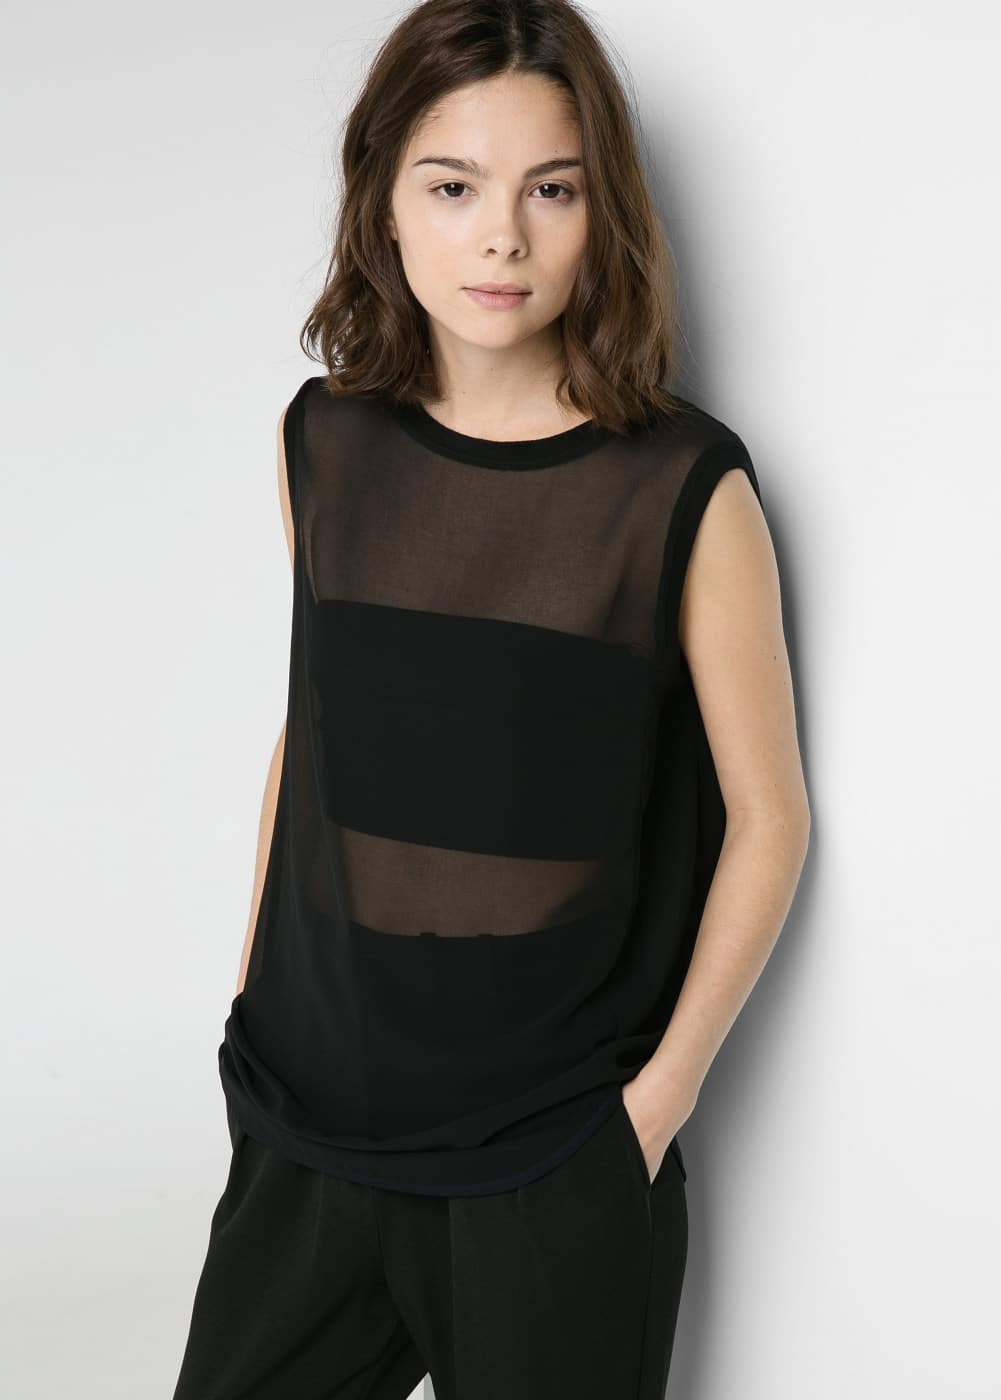 Chiffon transparent top